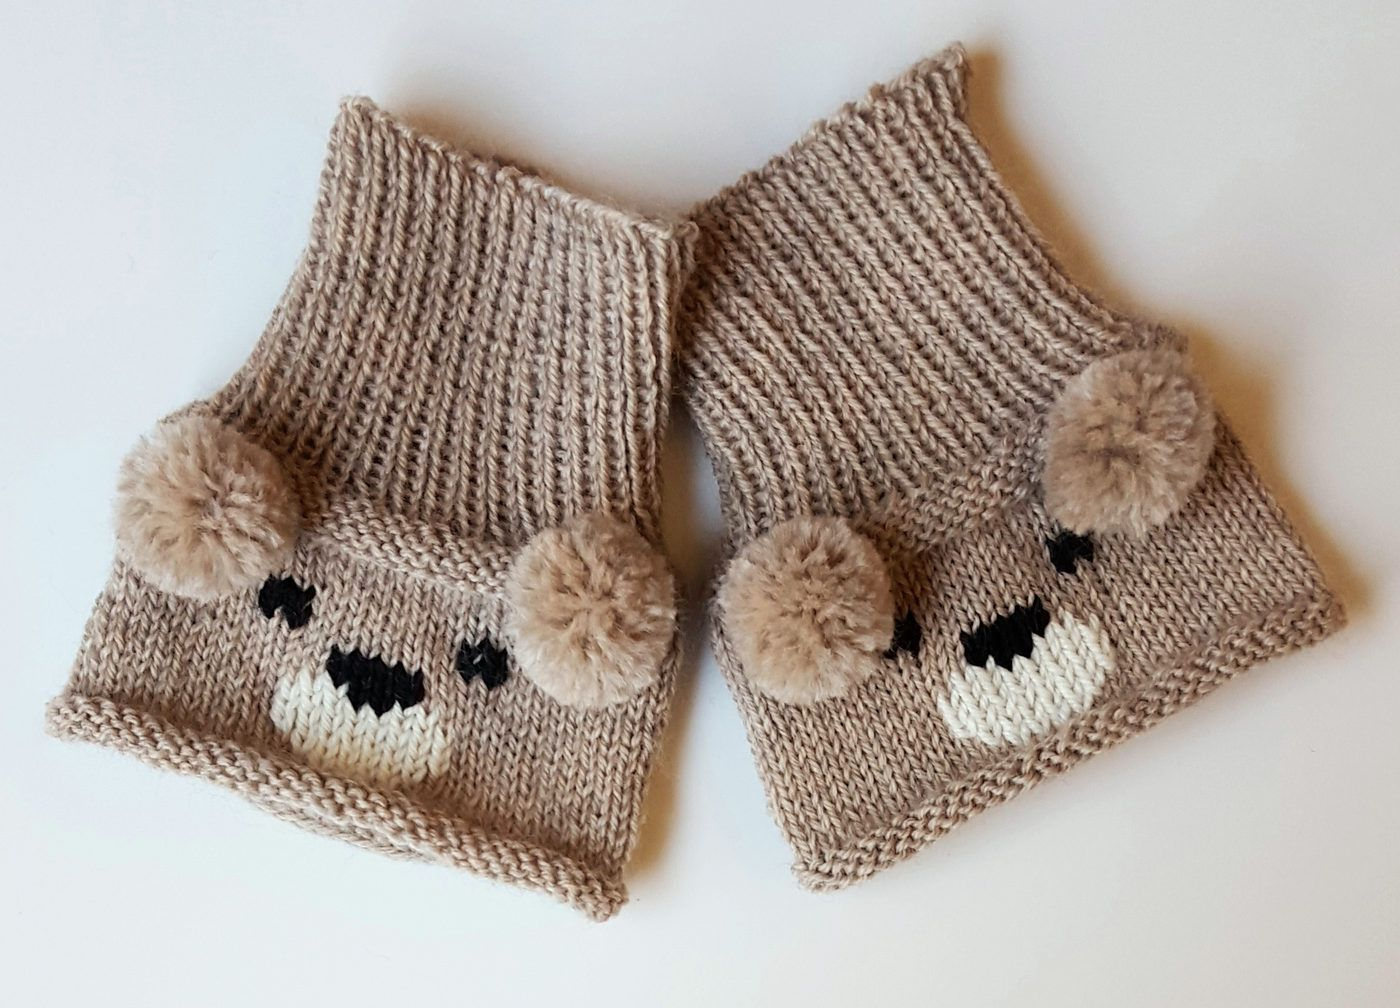 Free knitting pattern for teddy bear boot toppers knitcrochet free knitting pattern for teddy bear boot toppers bankloansurffo Gallery